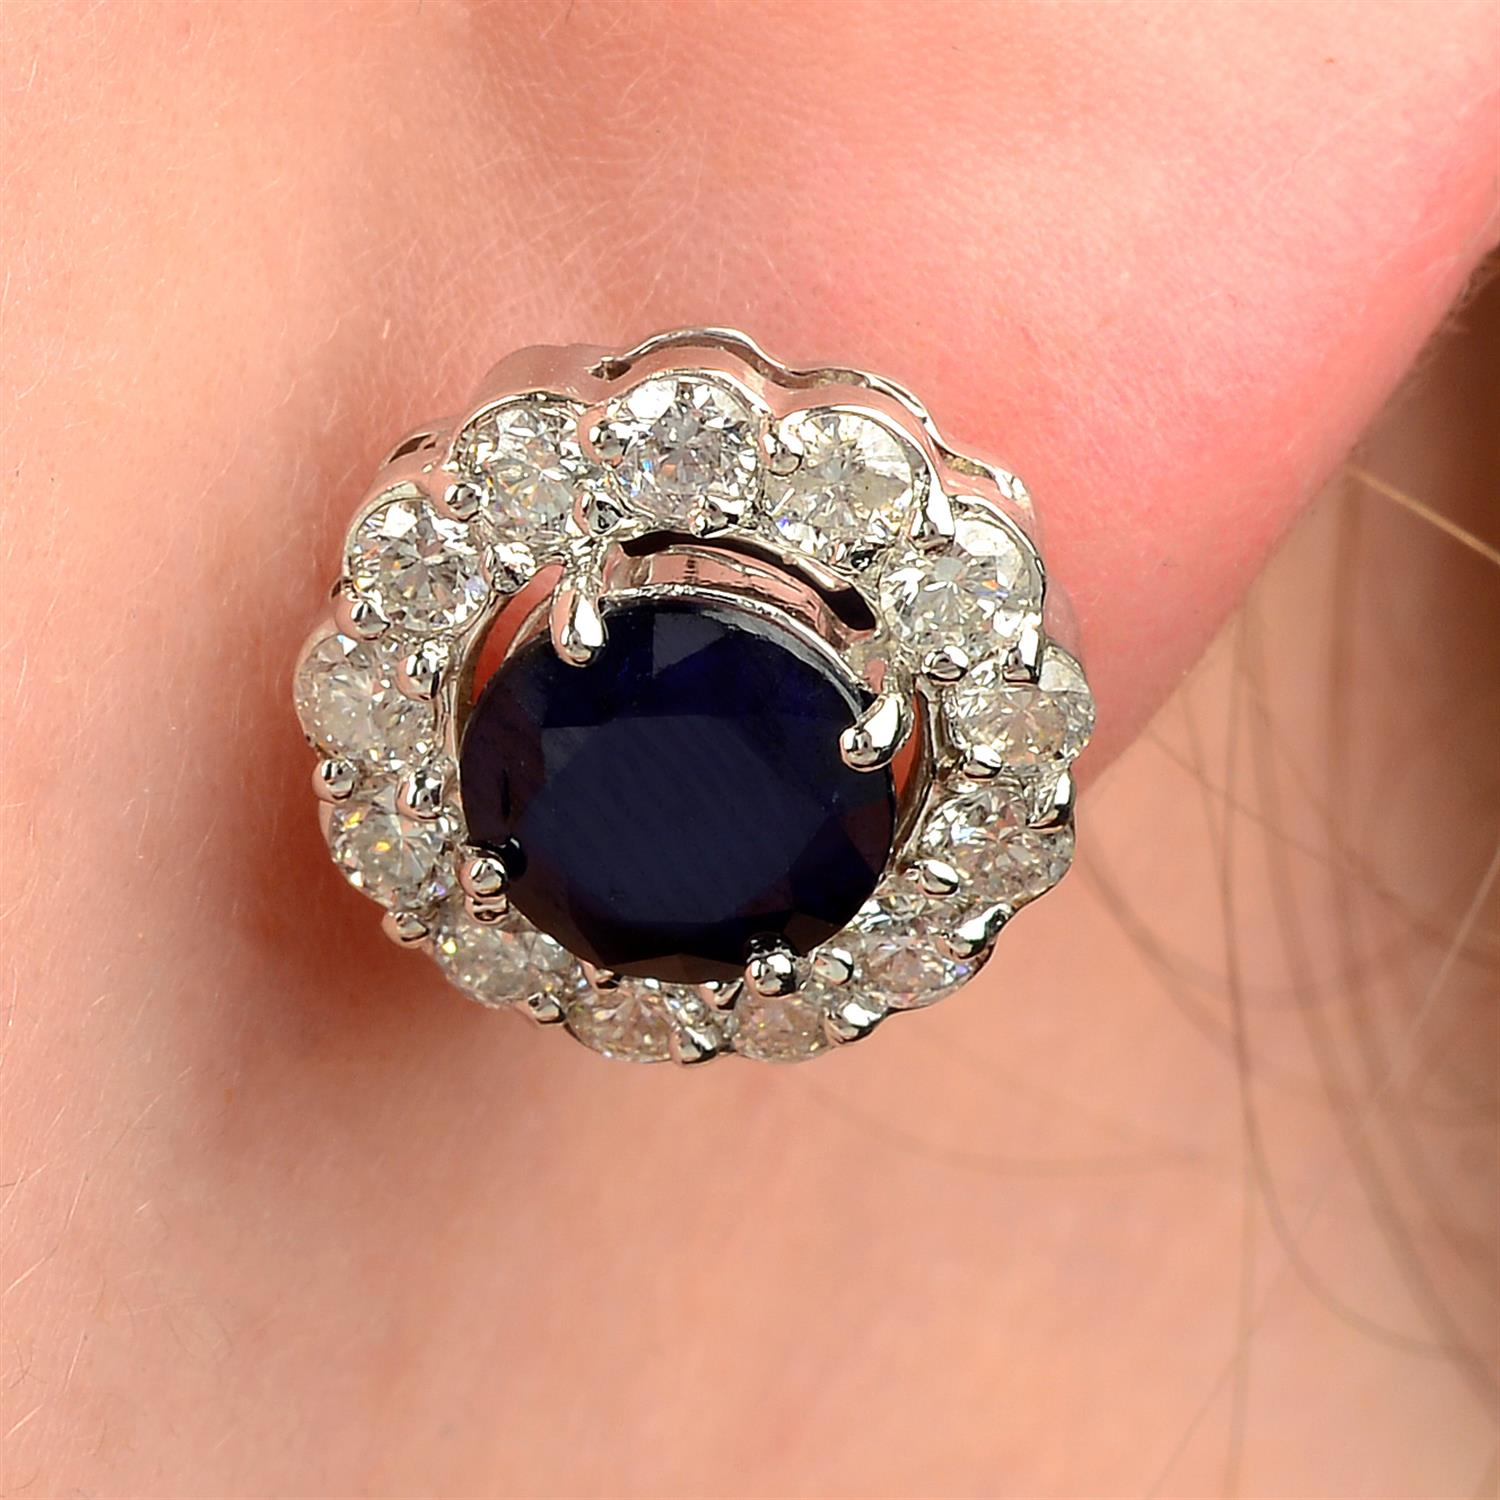 A pair of sapphire and brilliant-cut diamond earrings.